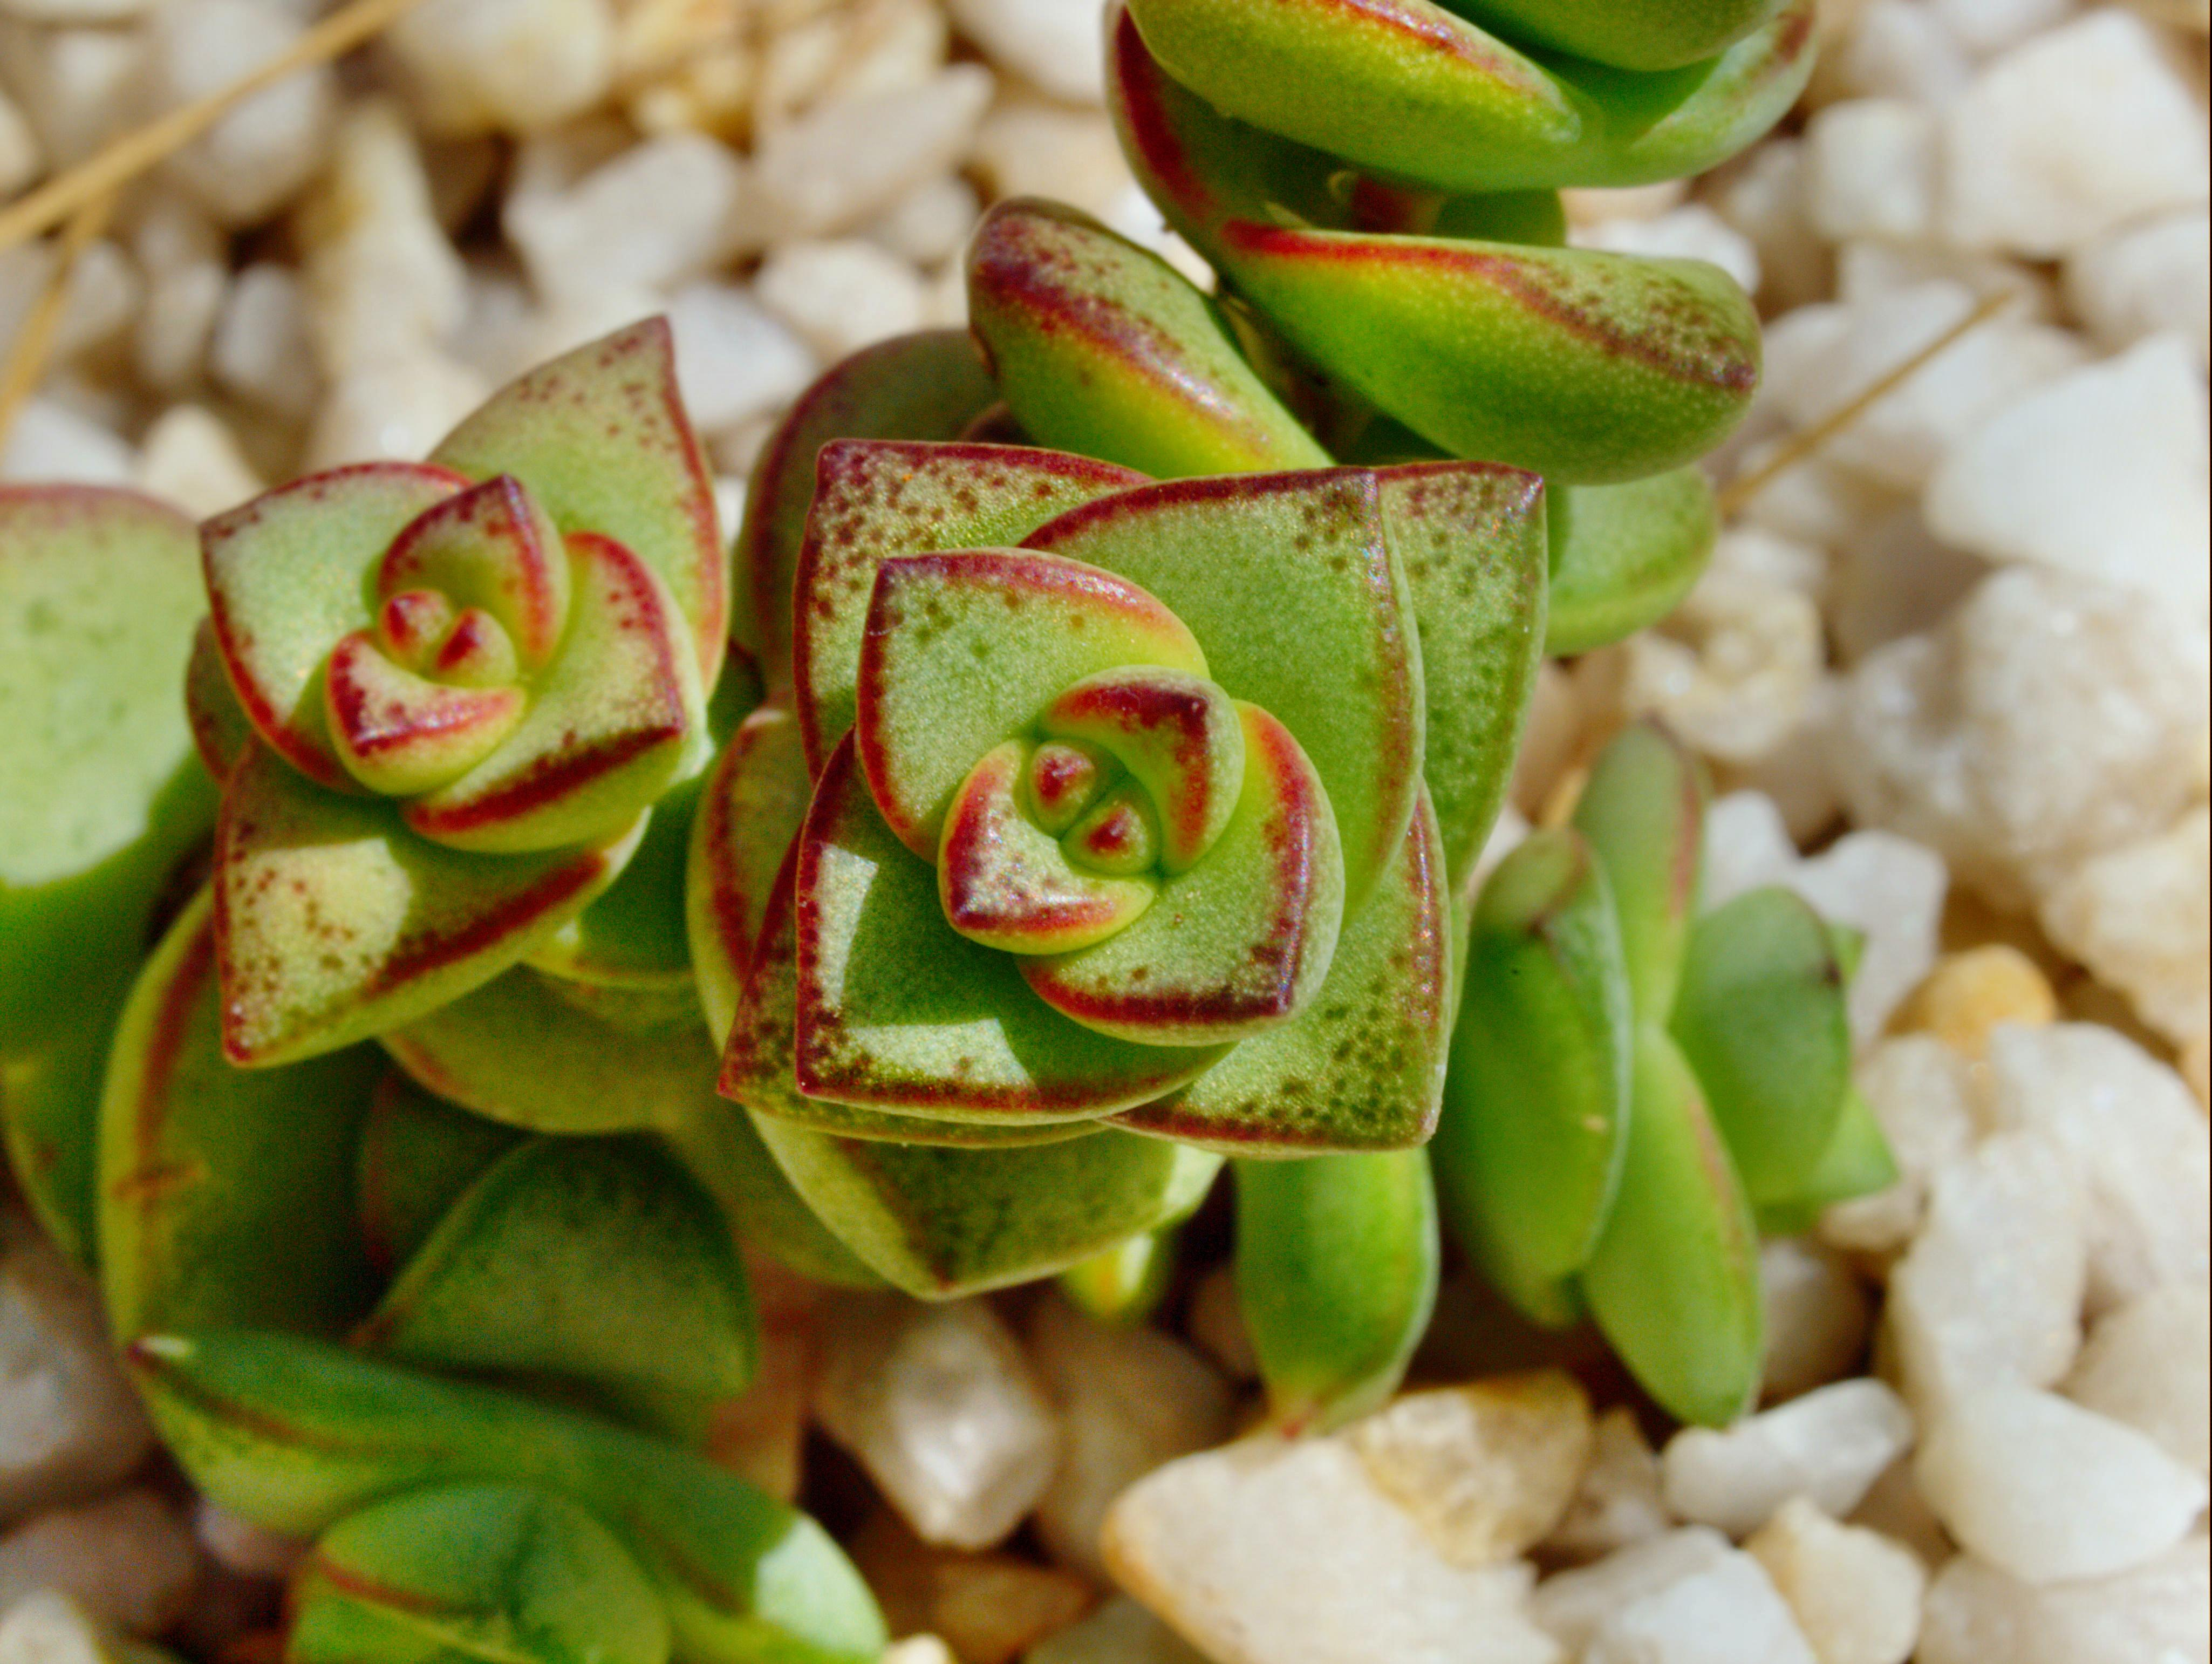 Crassula-perforata-2.jpeg